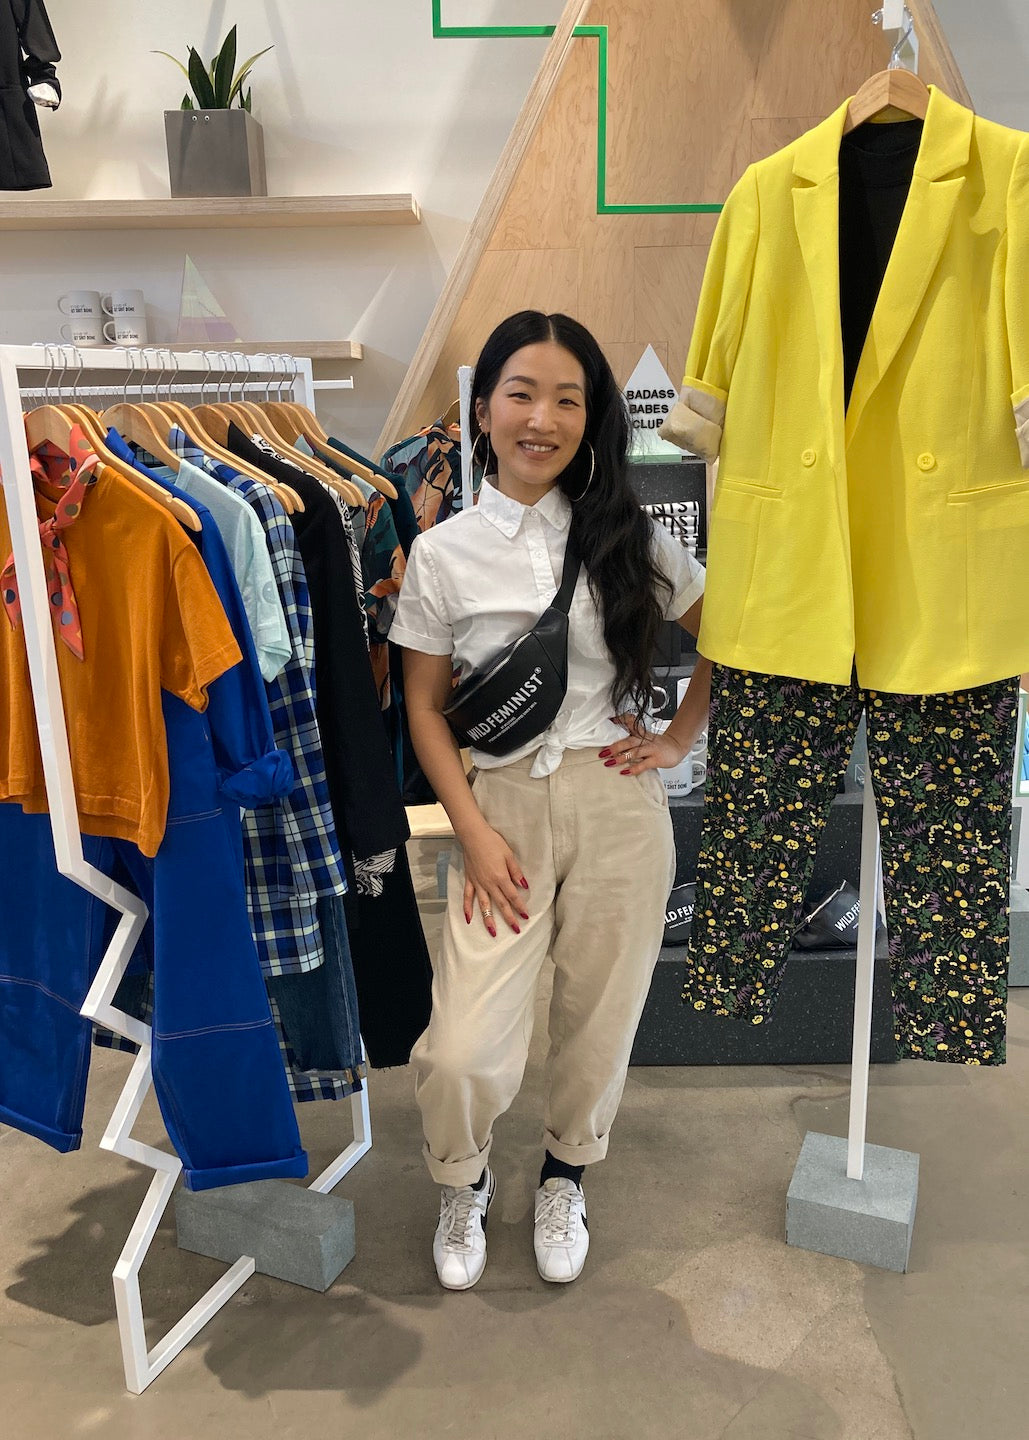 Image of store associate in store next to a clothing rack and yellow blazer hung up